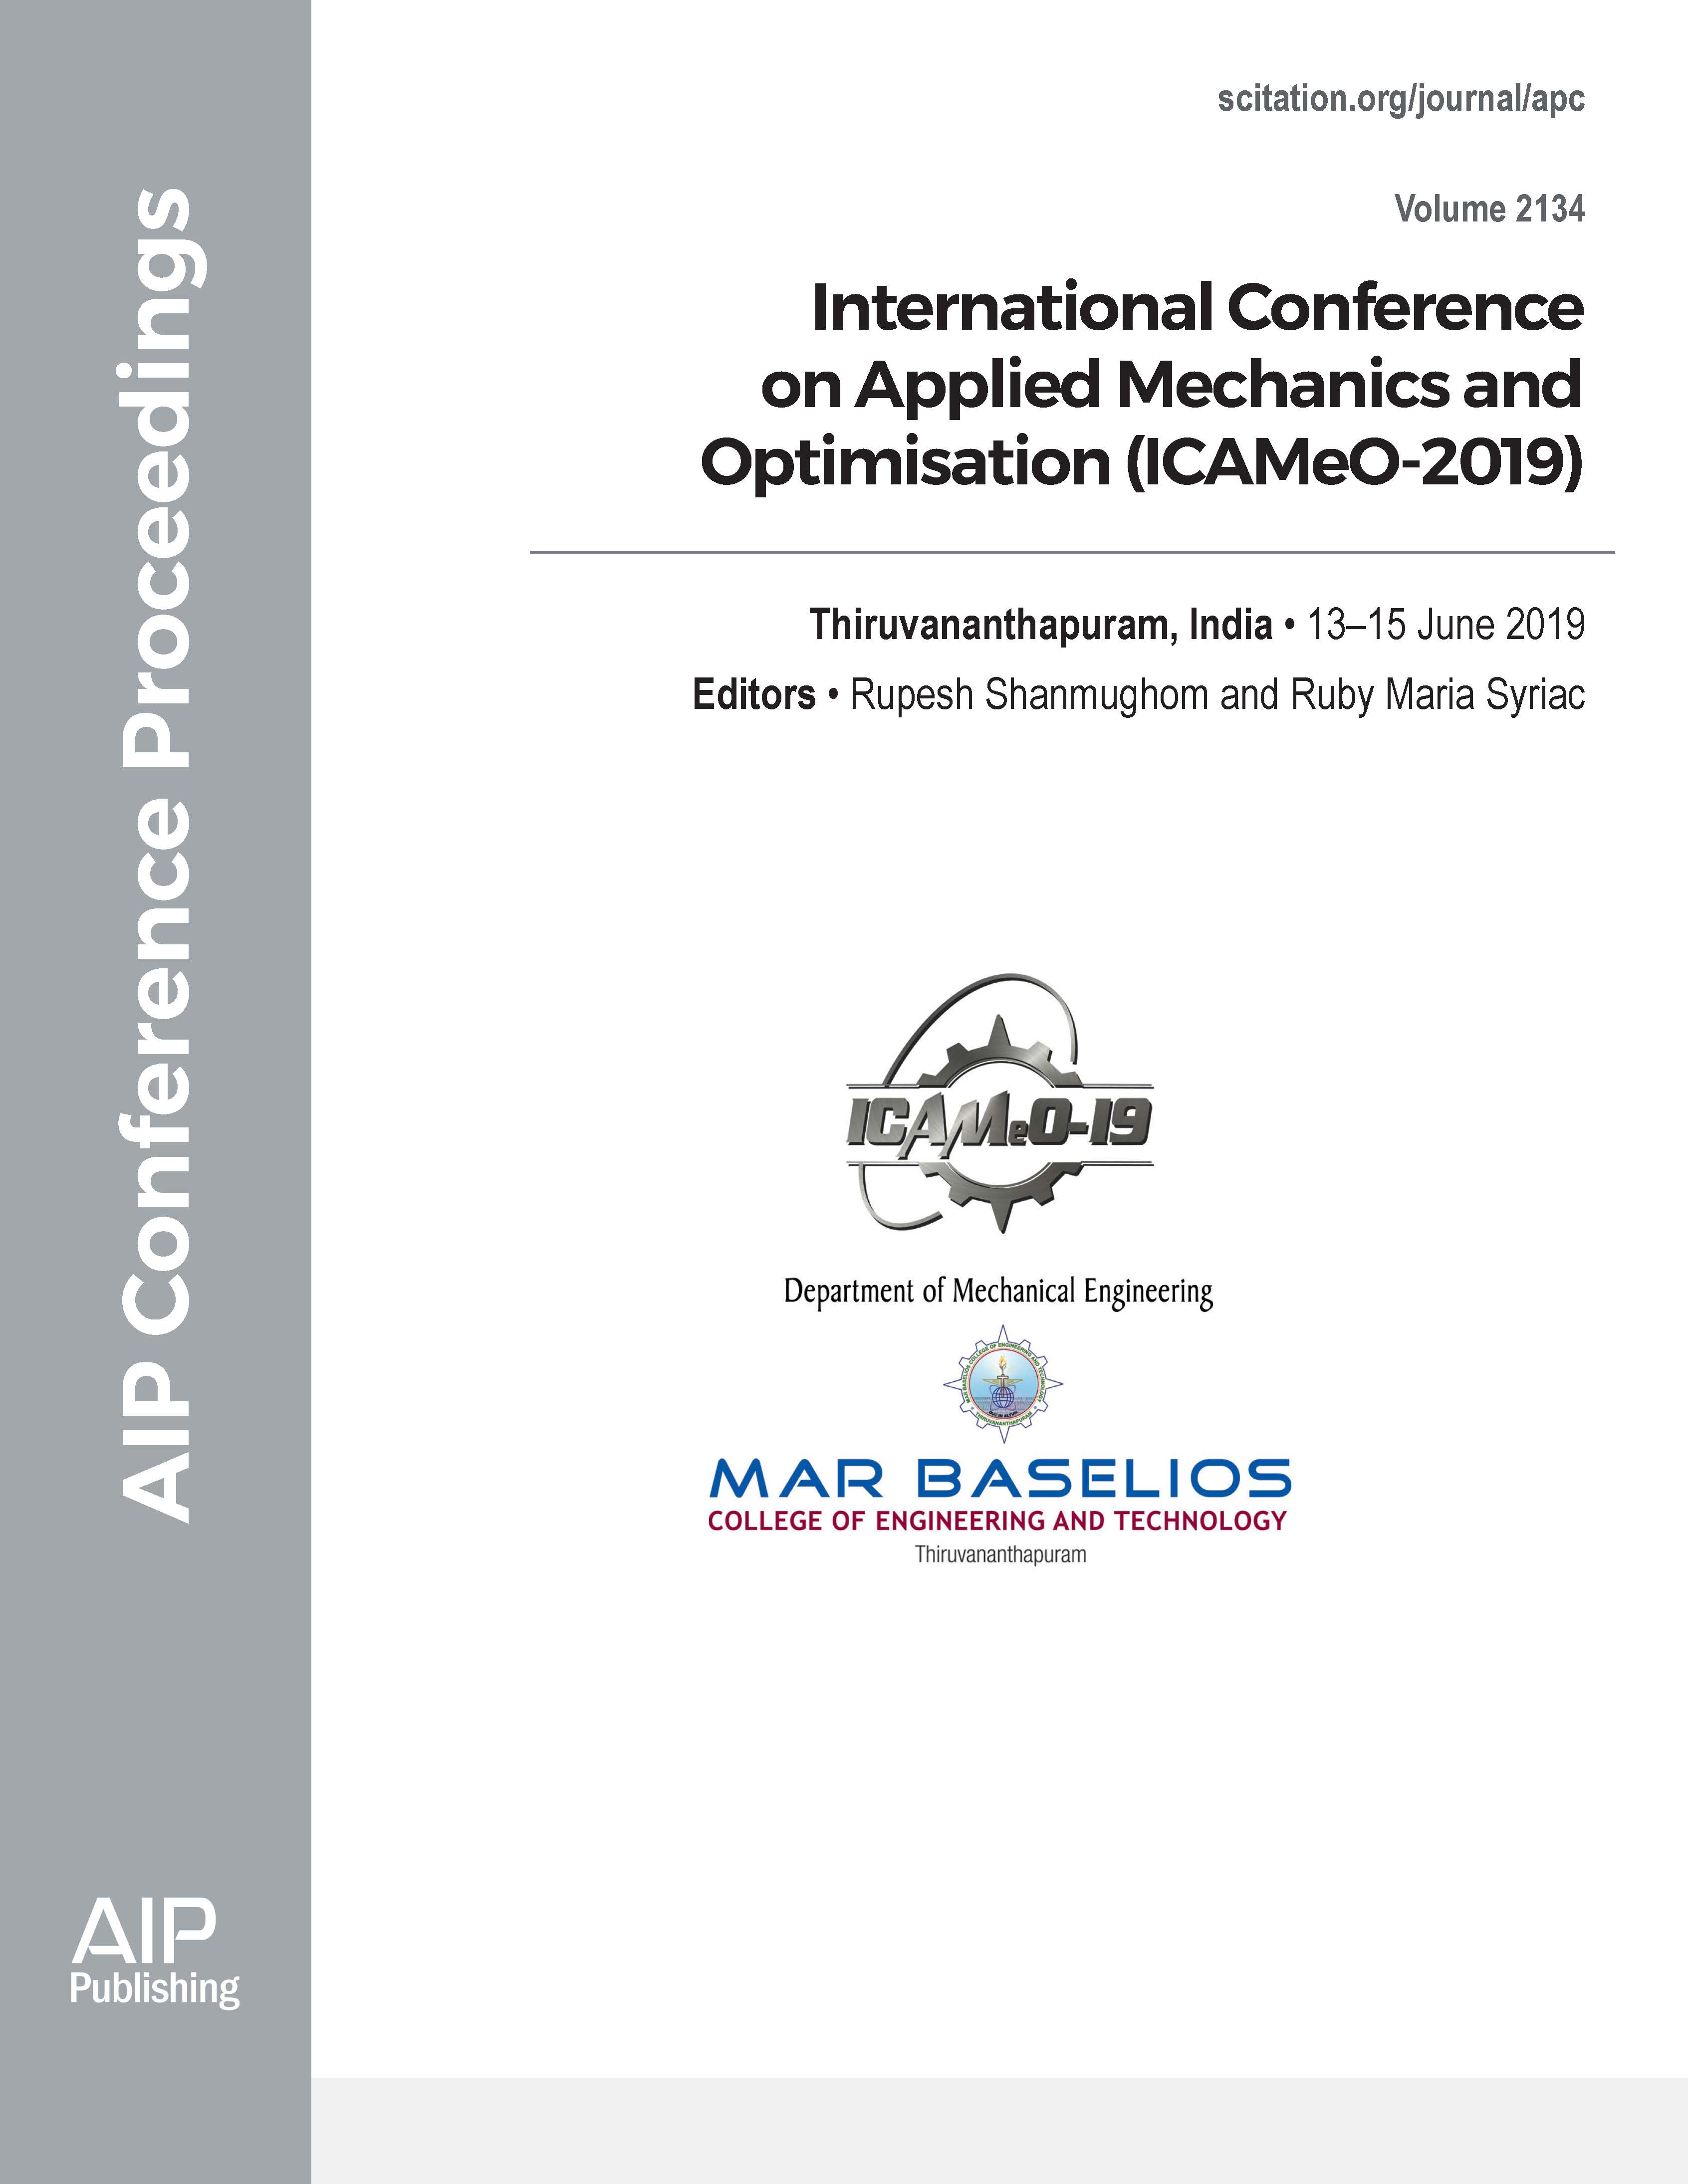 Volume 2134: International Conference on Applied Mechanics and